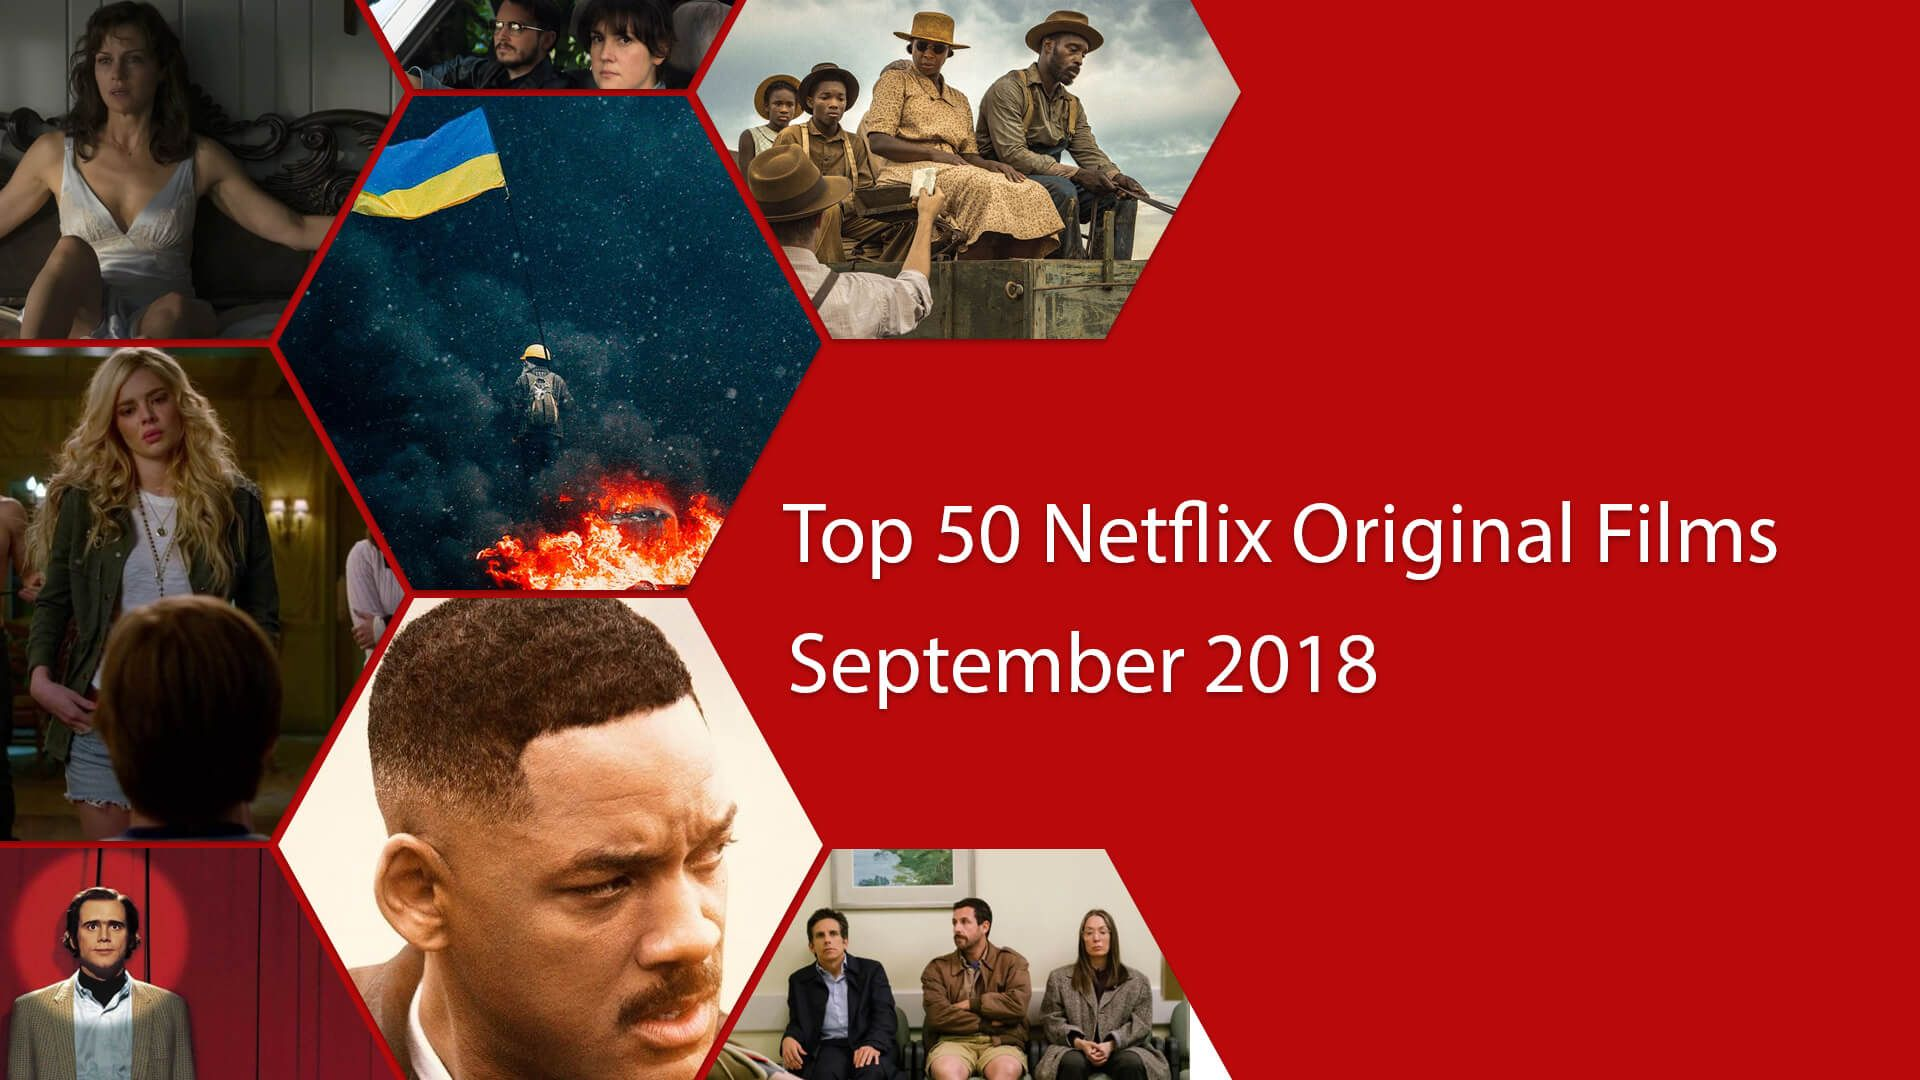 New This Week on Netflix (September 14th, 2018) What's